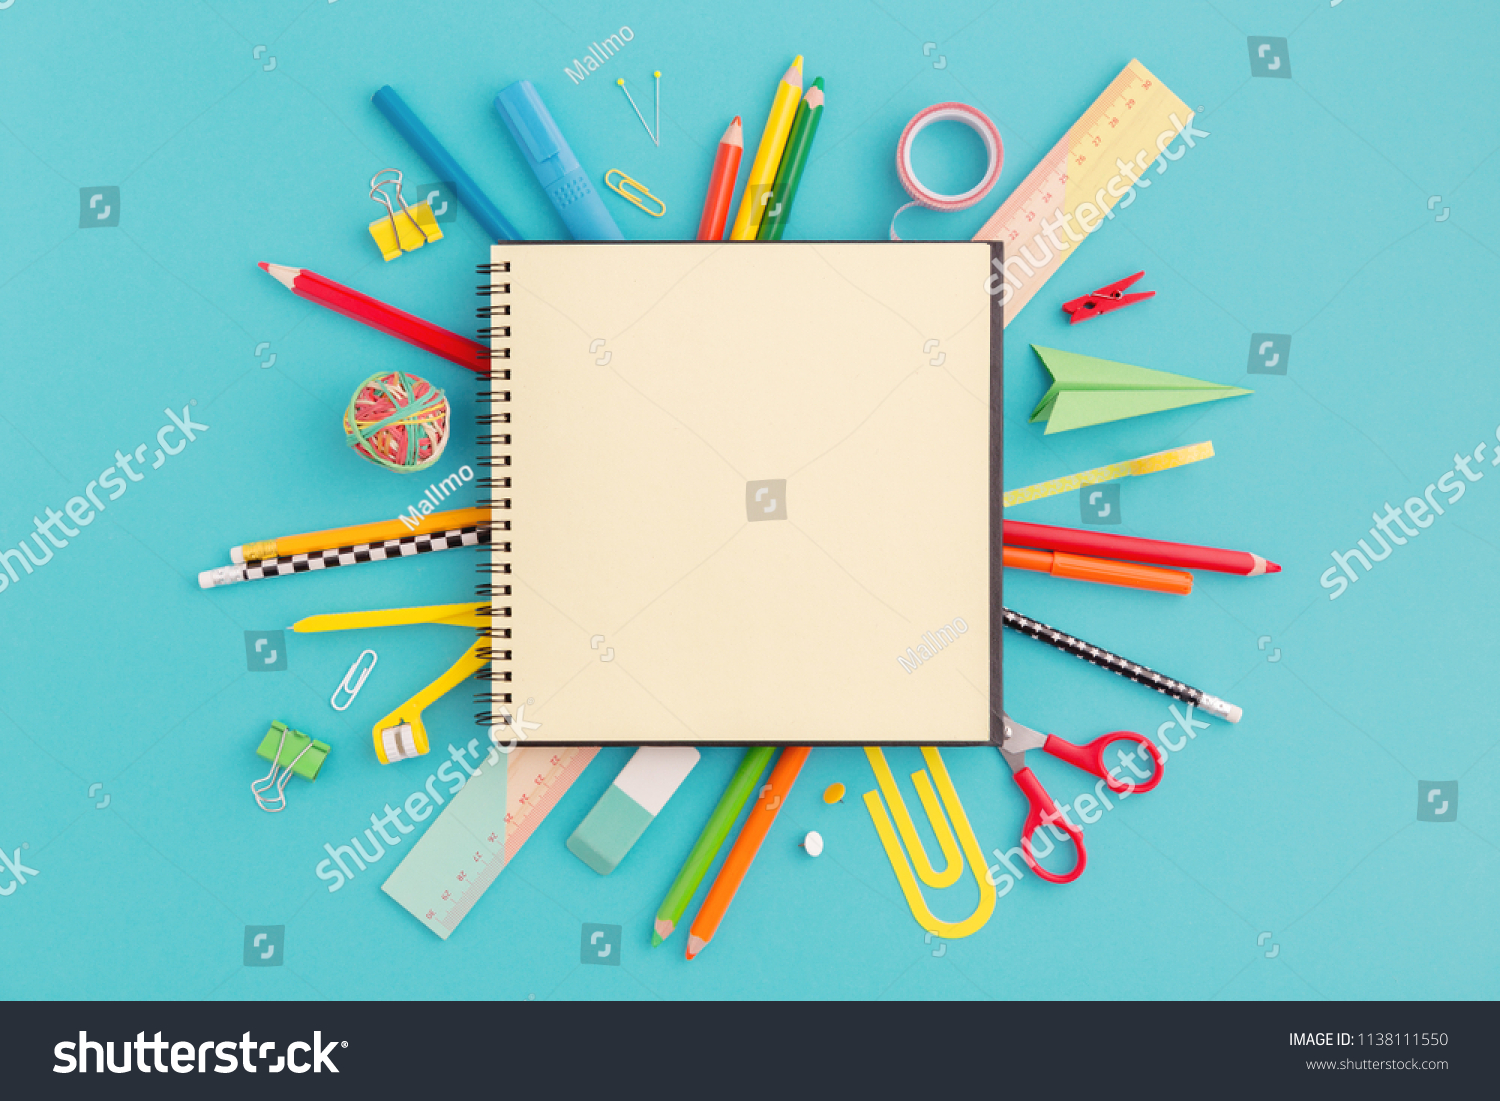 School notebook and various stationery. Back to school concept. #1138111550